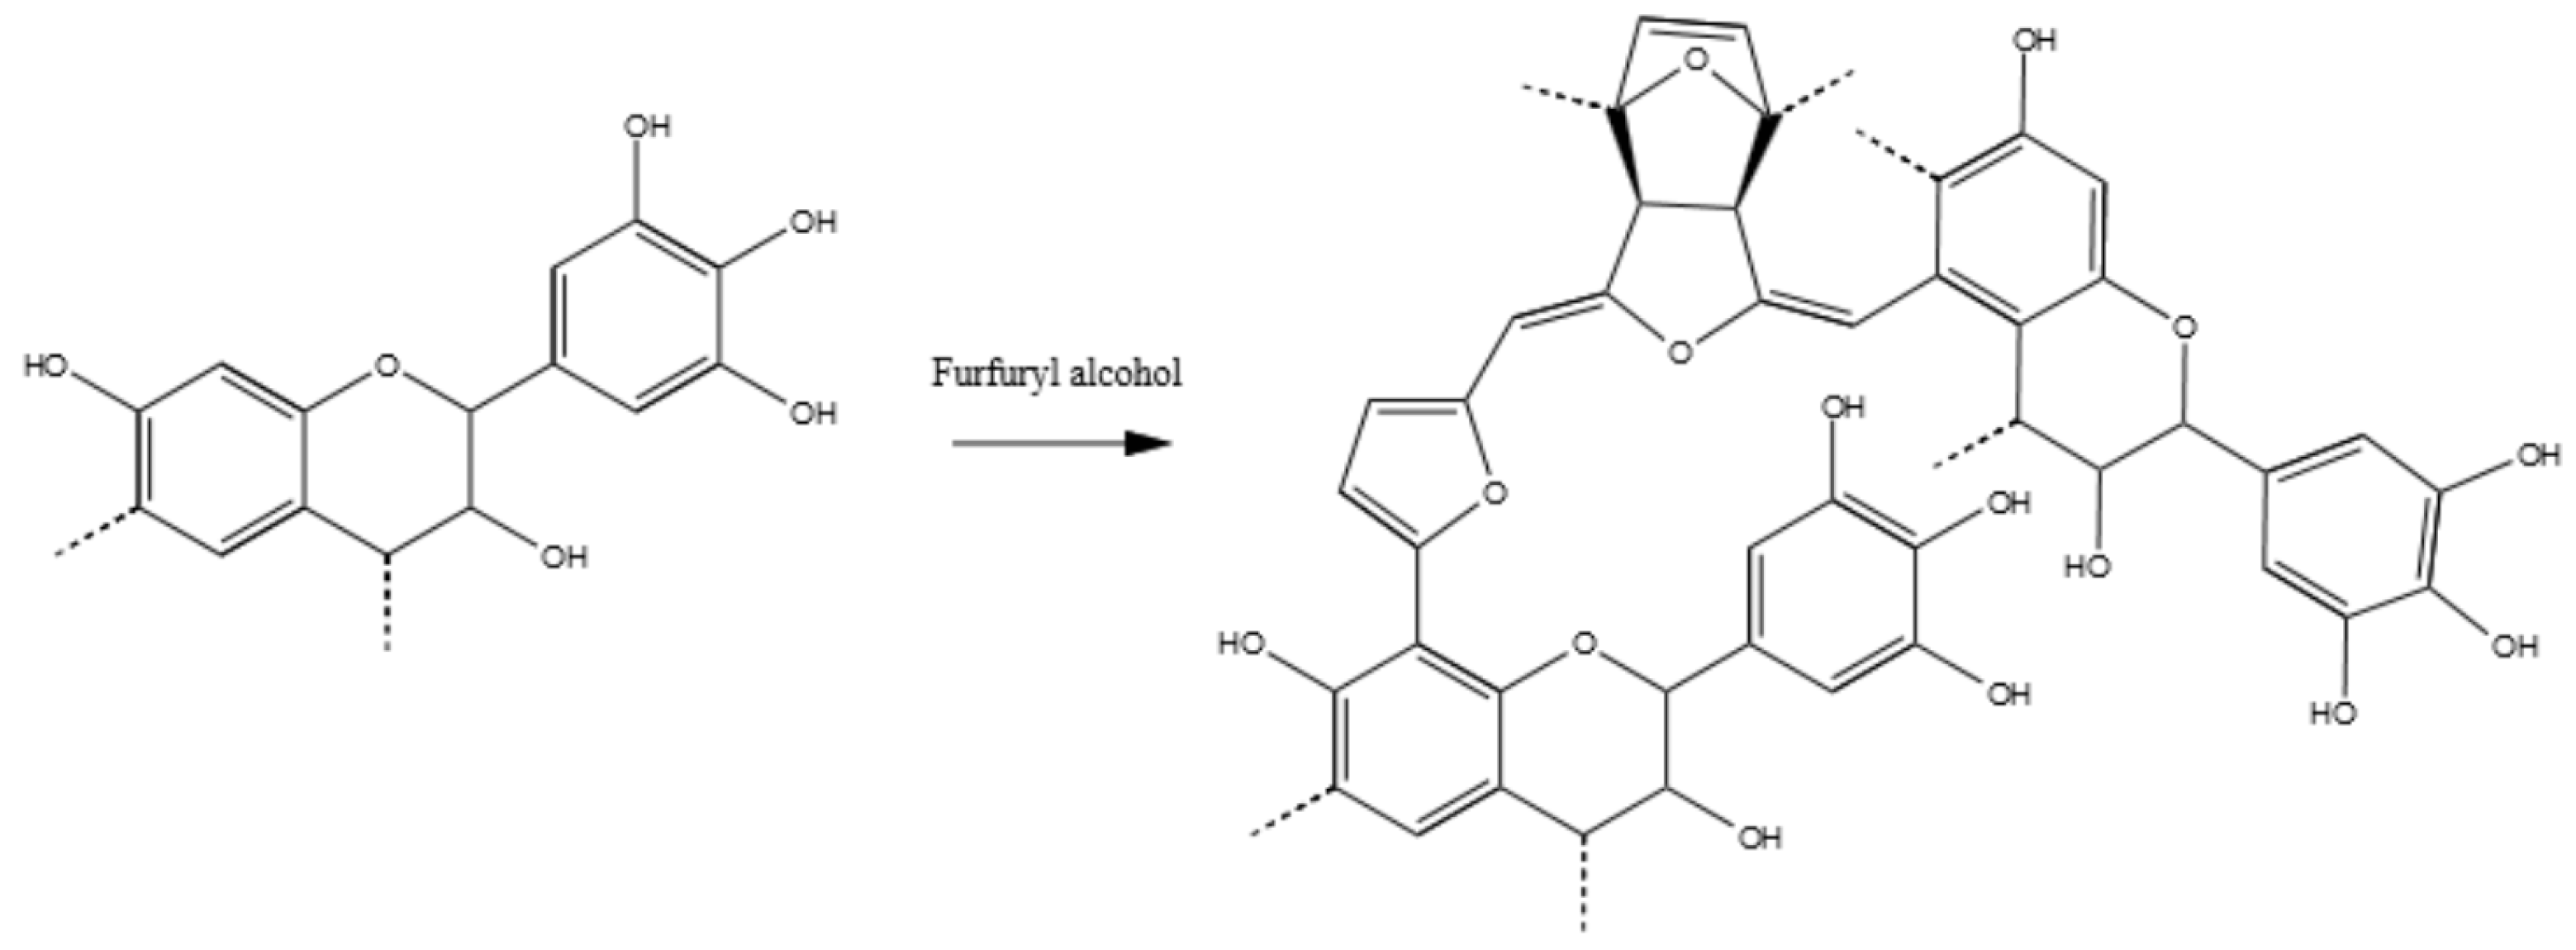 Polymers   Free Full-Text   Tannin-Based Copolymer Resins: Synthesis